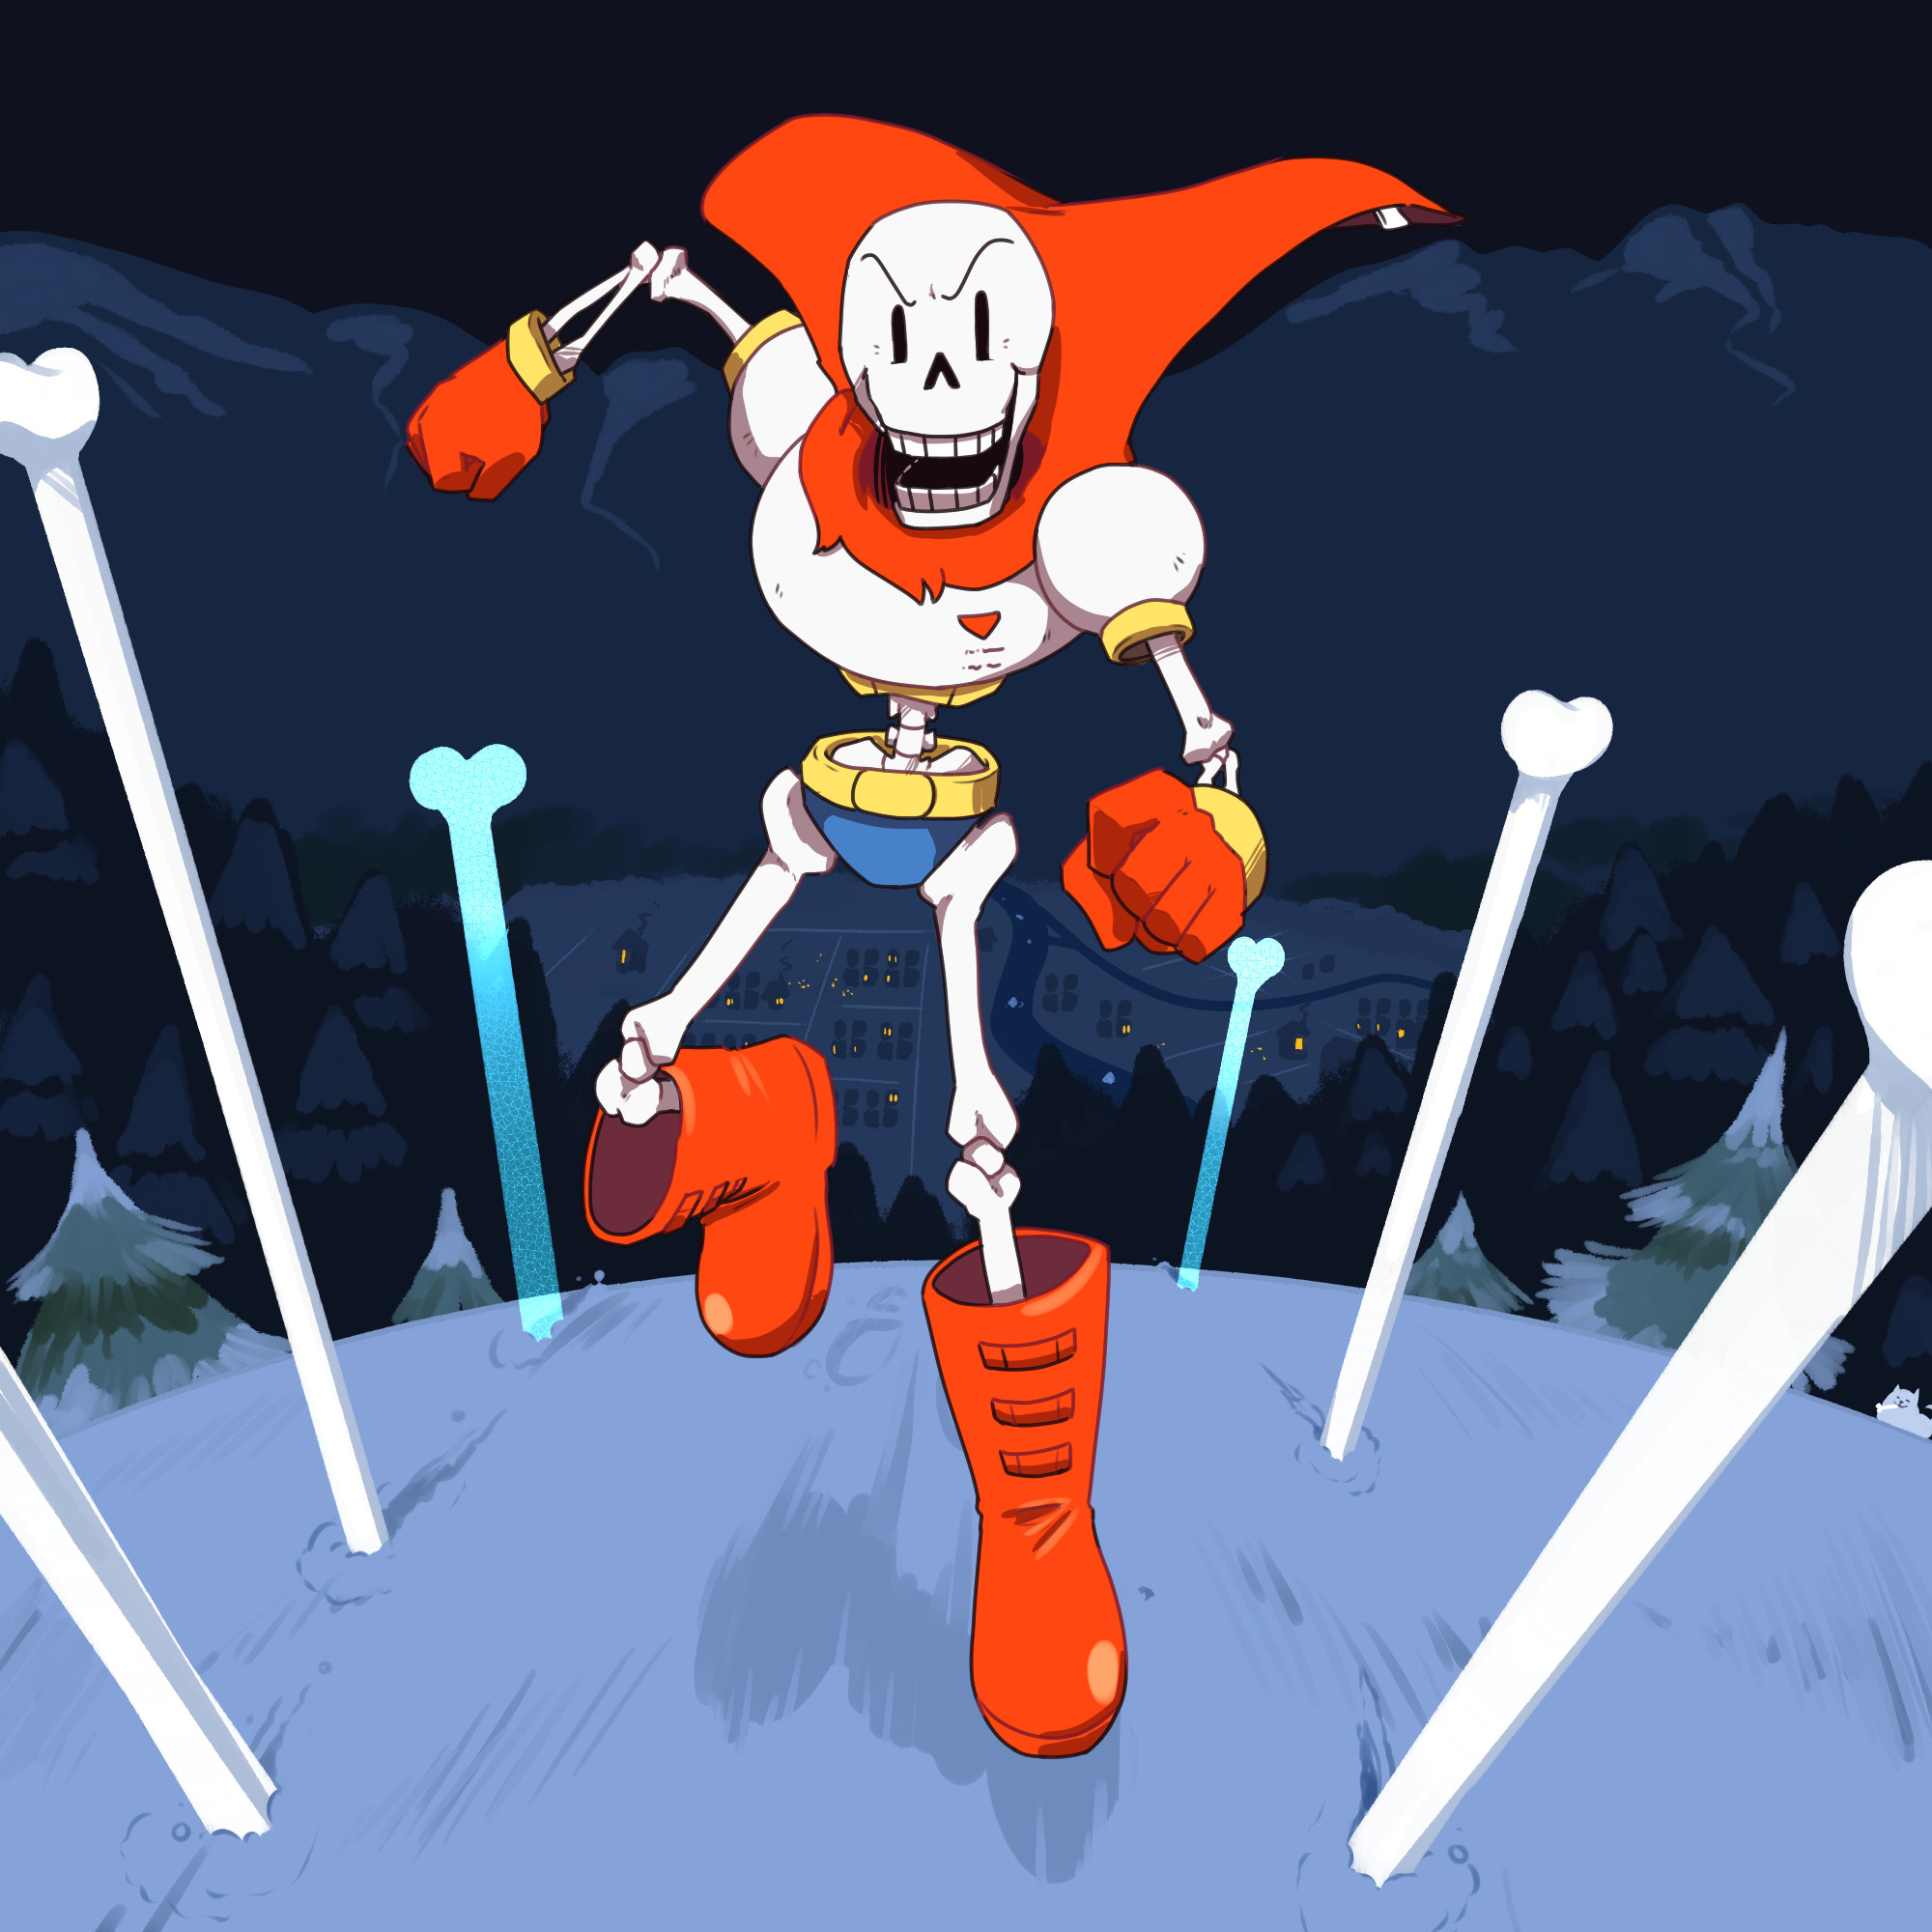 UNDERTALE-The Game images Papyrus HD wallpaper and background photos